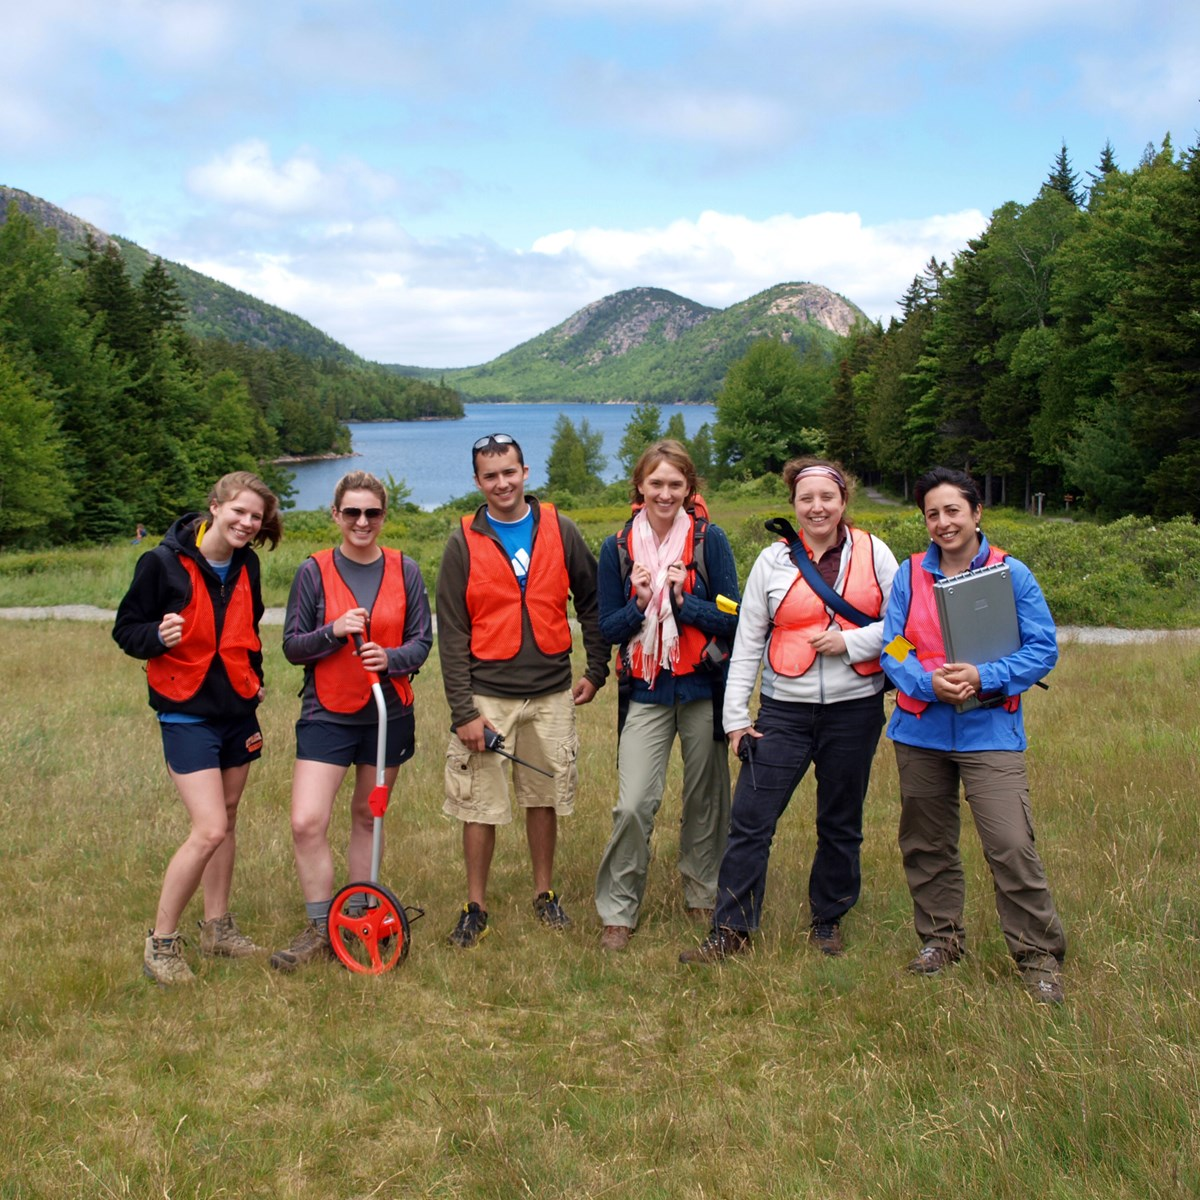 Interns during field trip to Acadia, posing in safety vests and work gear in front of Jordan Pond.